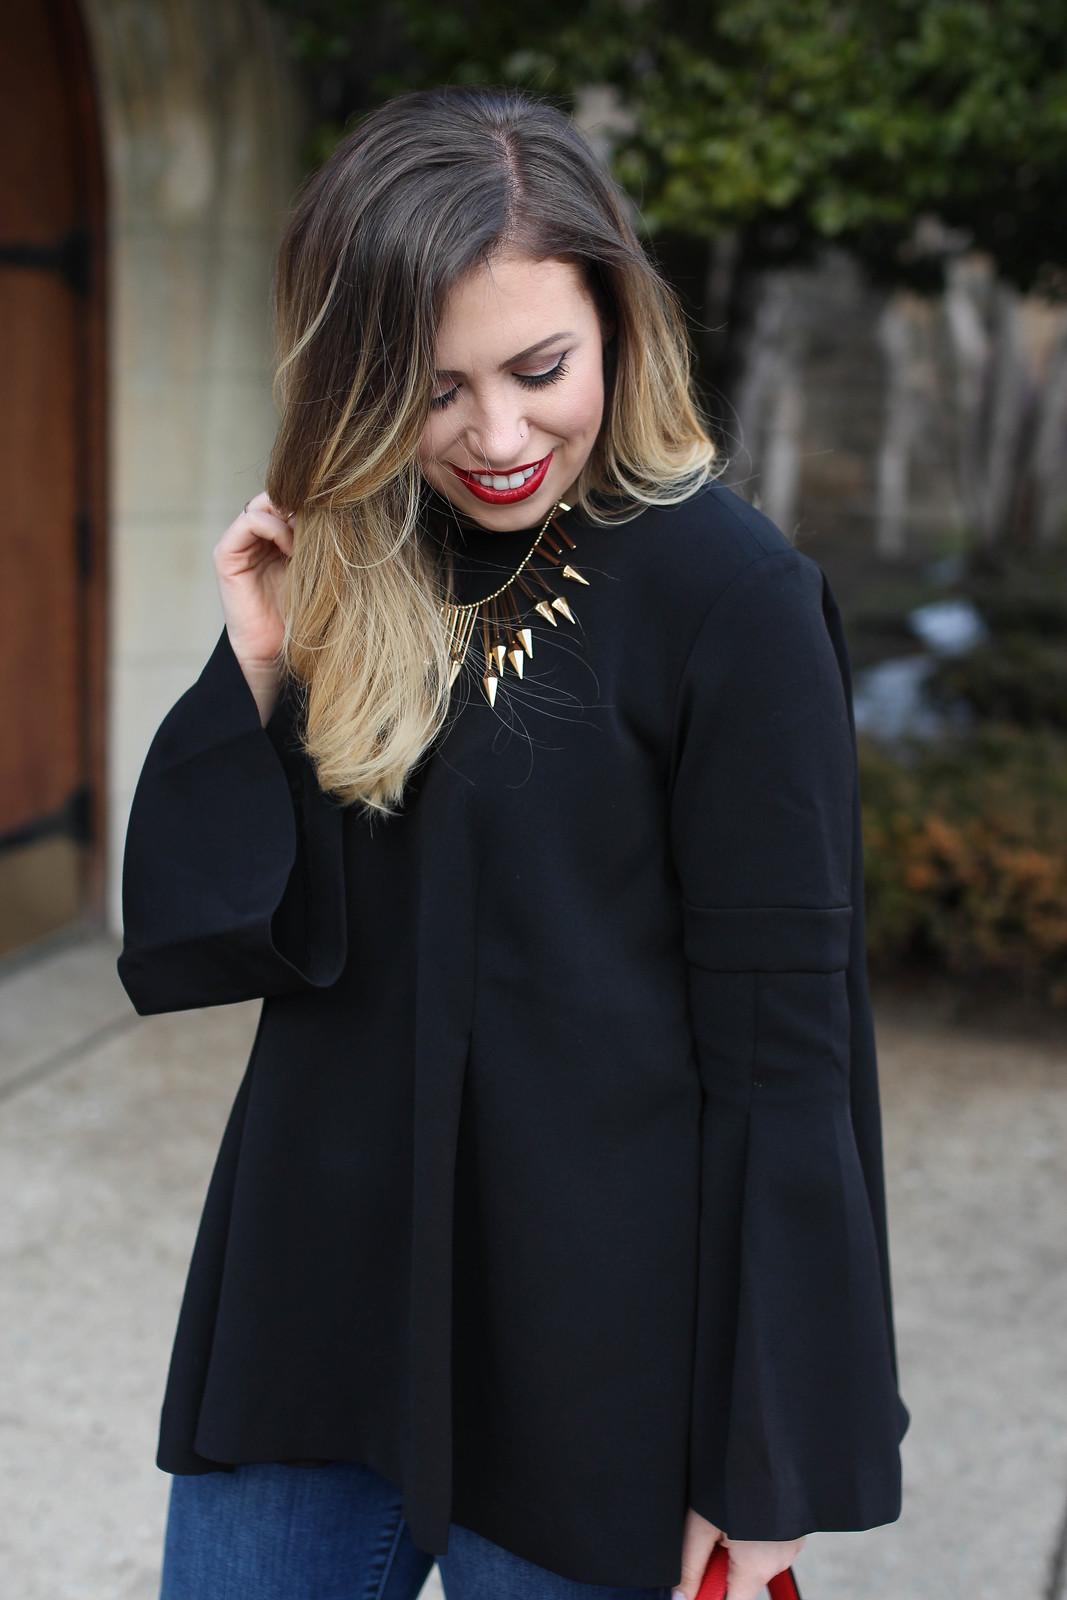 Blonde Ombre Hair | Gold Baublebar Statement Necklace